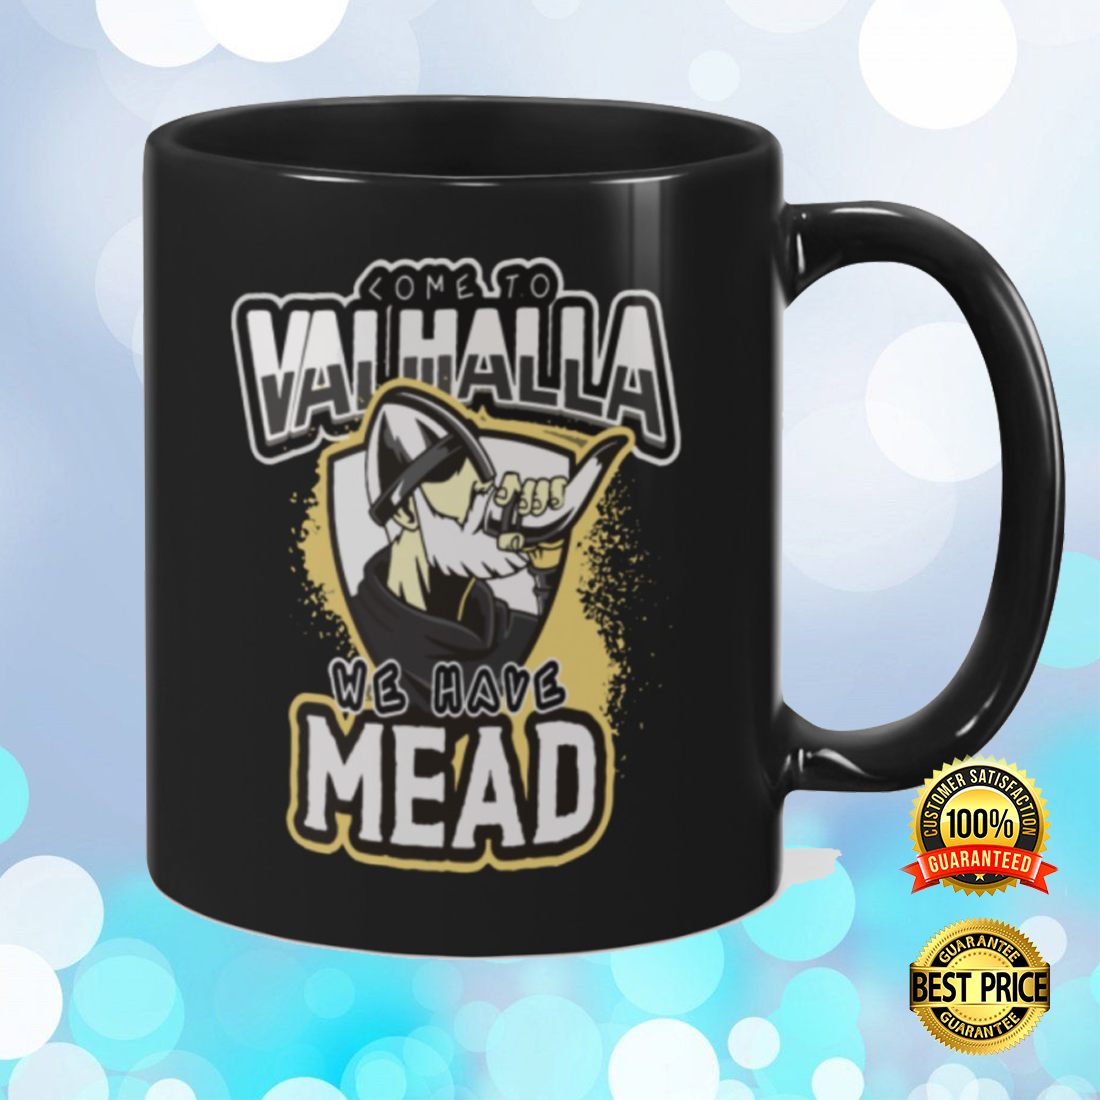 Come to valhalla we have mead mug 4